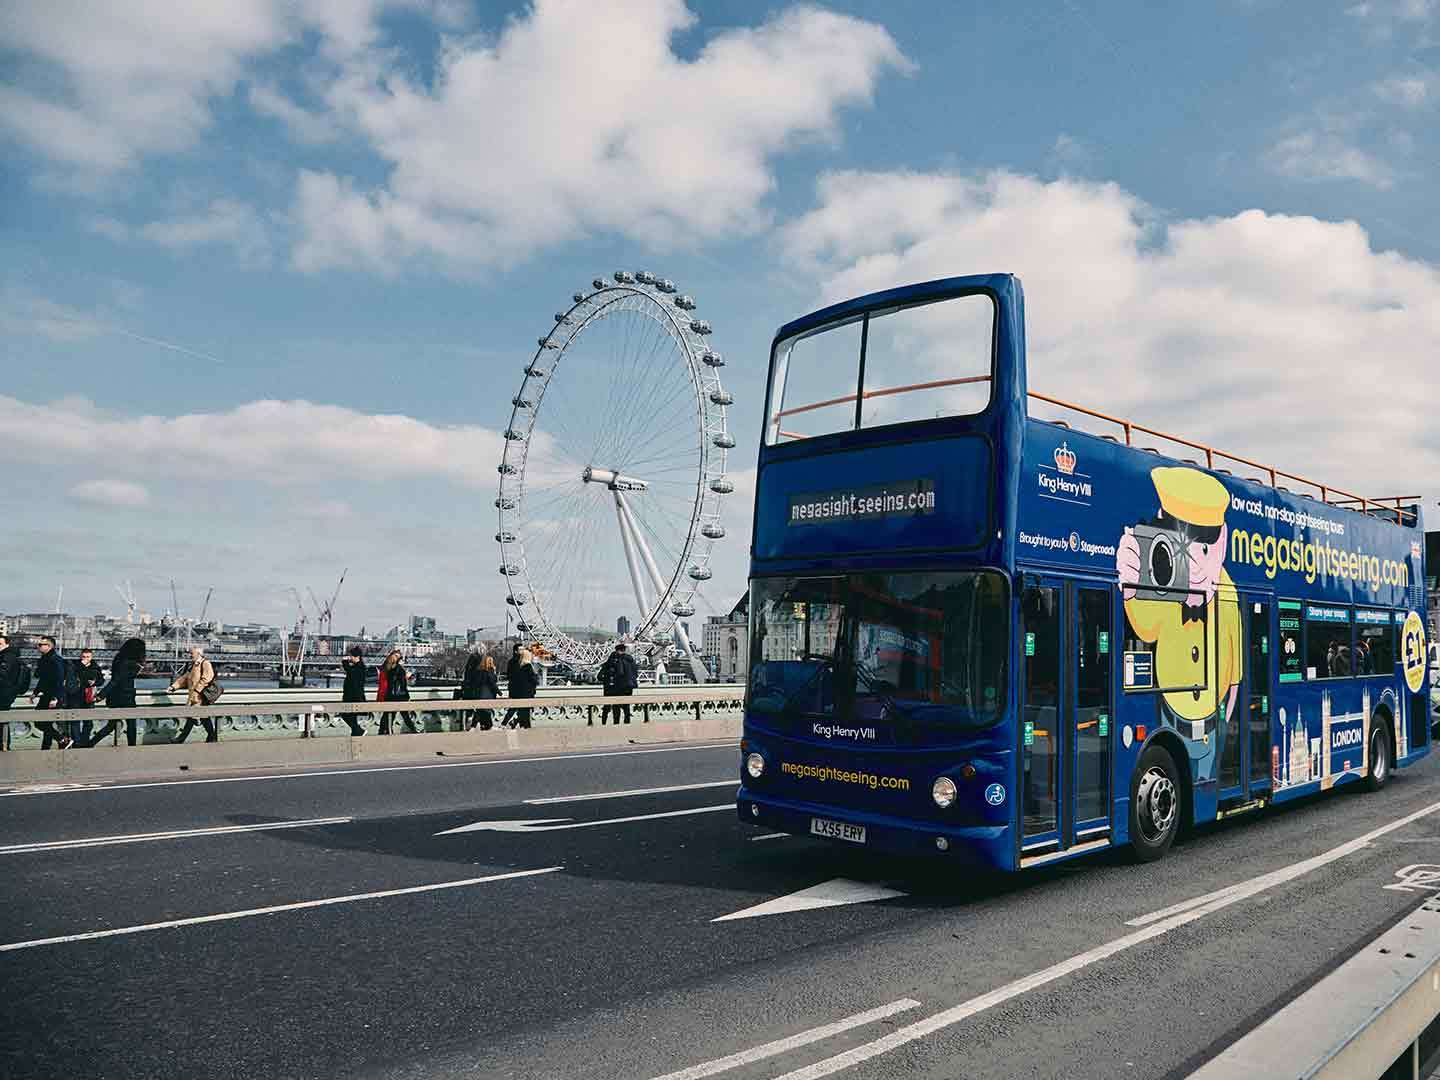 The new London bus tour from megabus.com UK